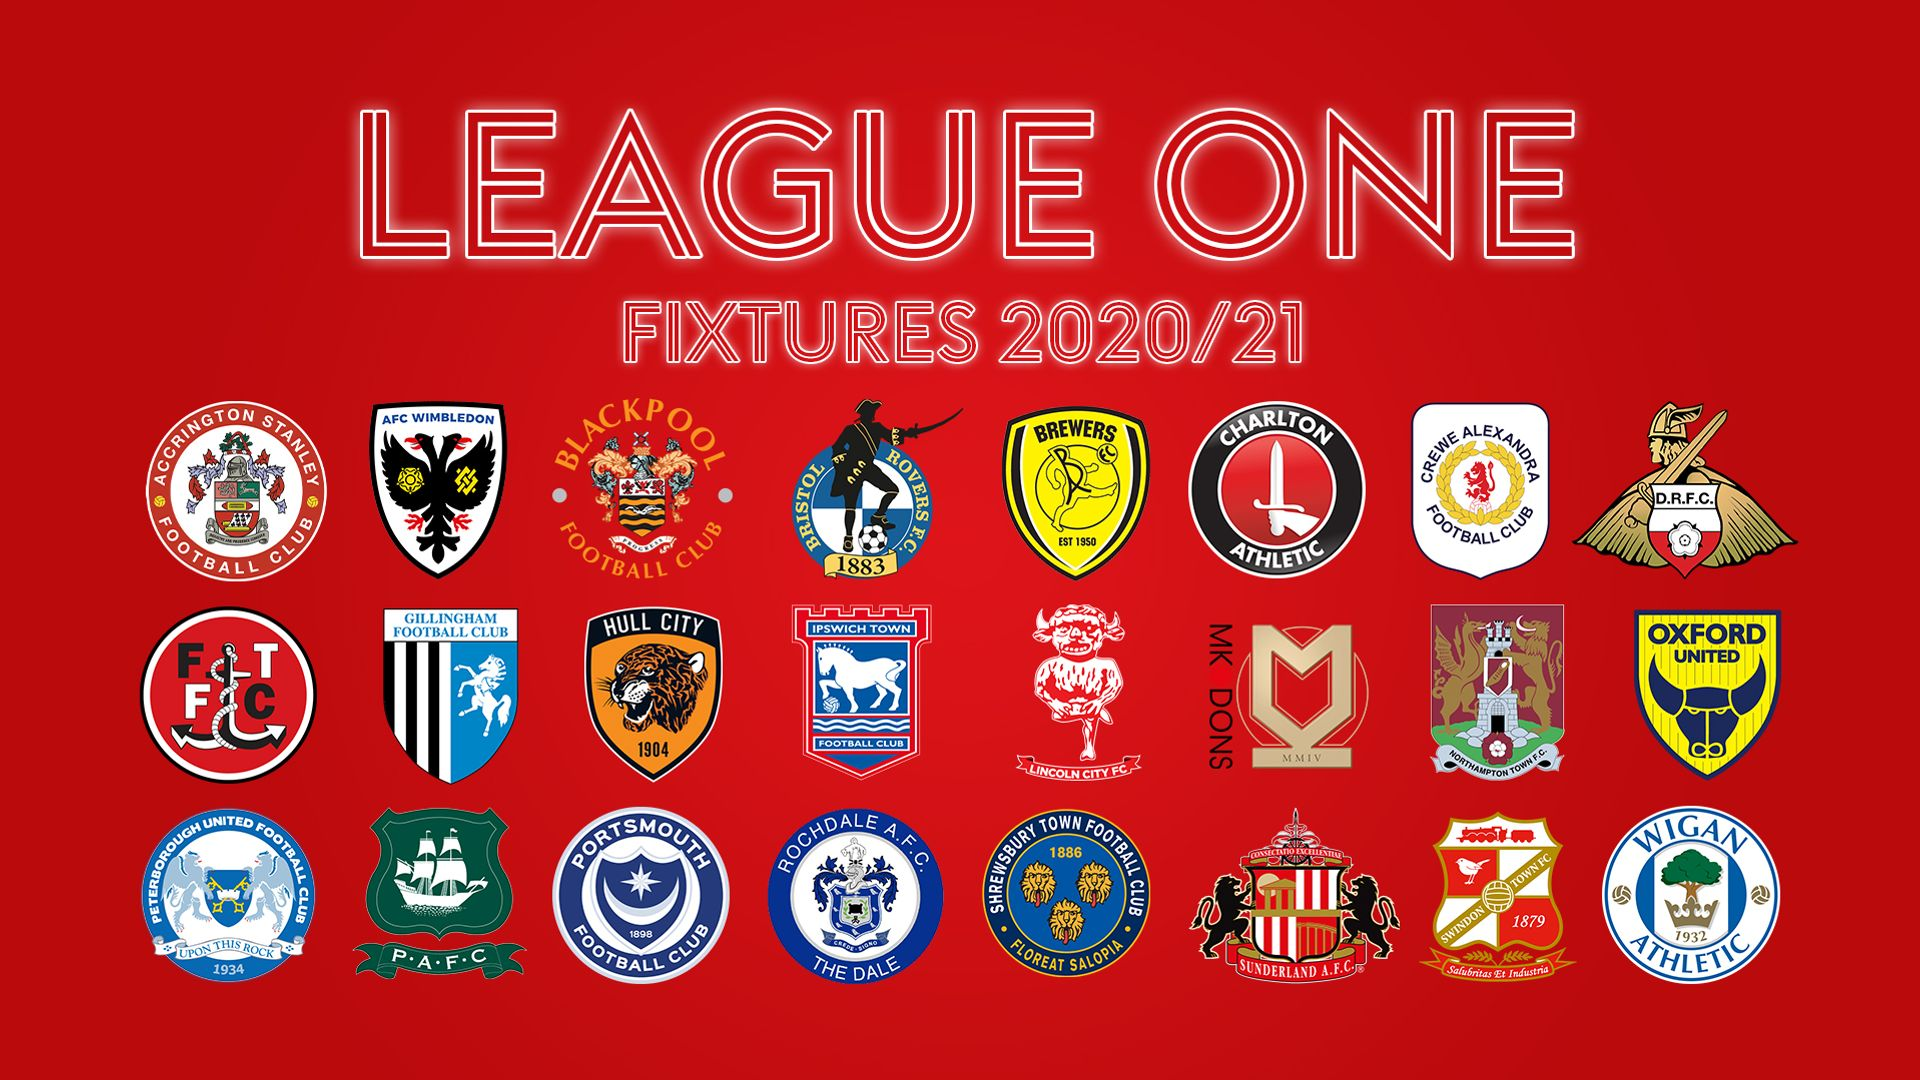 League One fixtures 2020/21